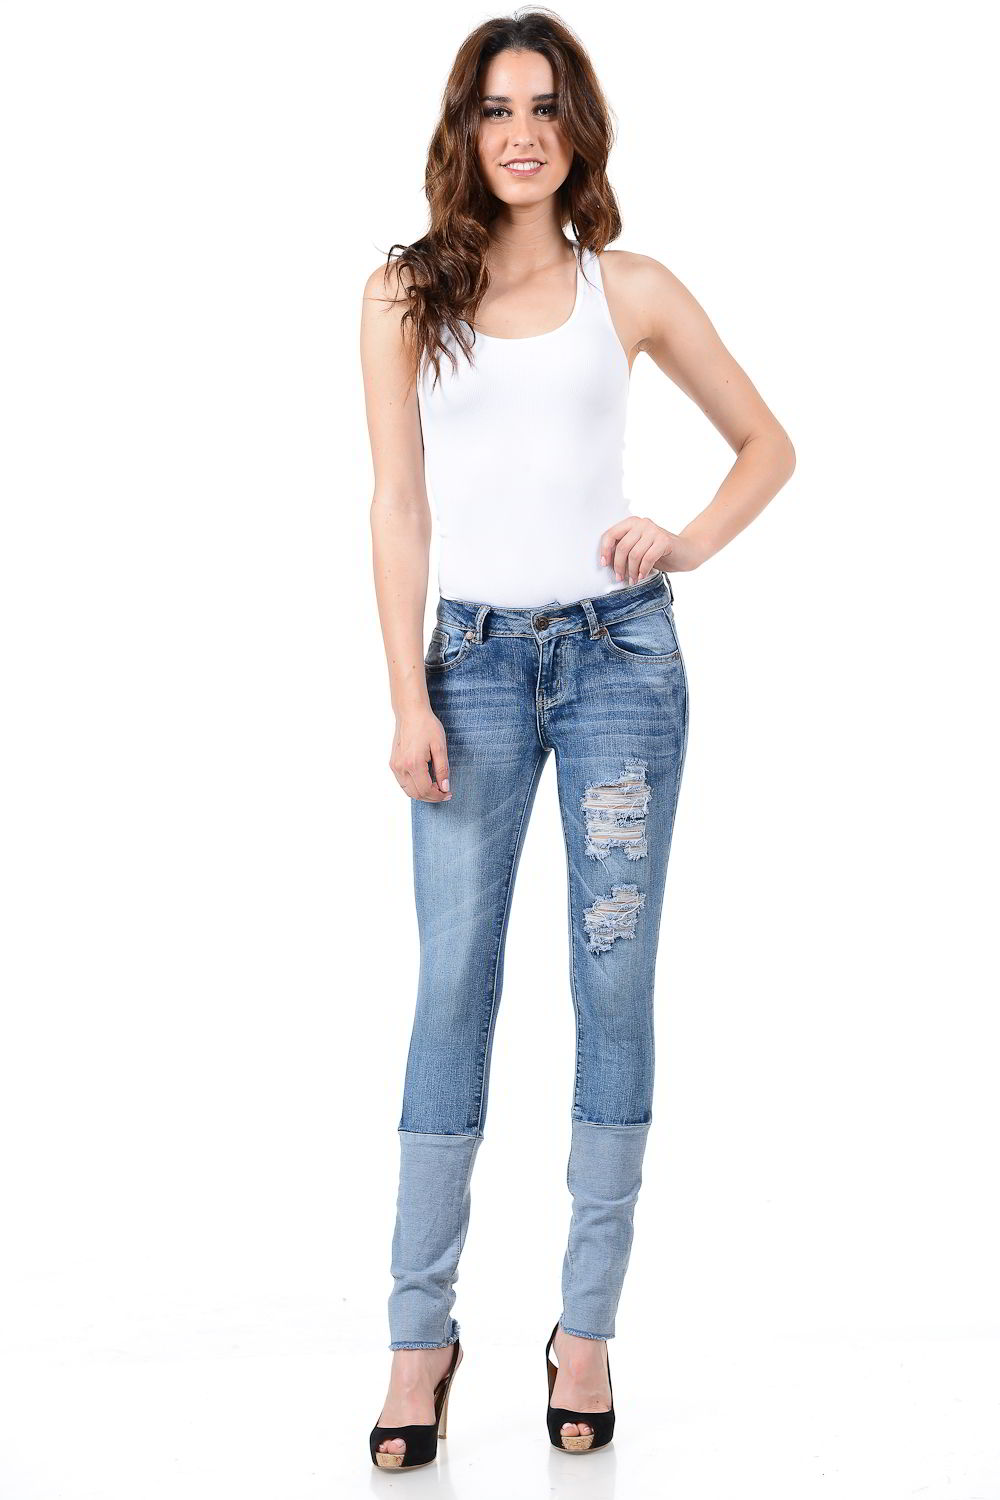 Sweet Look Premium Edition Women's Jeans - Push Up - Style X118-R